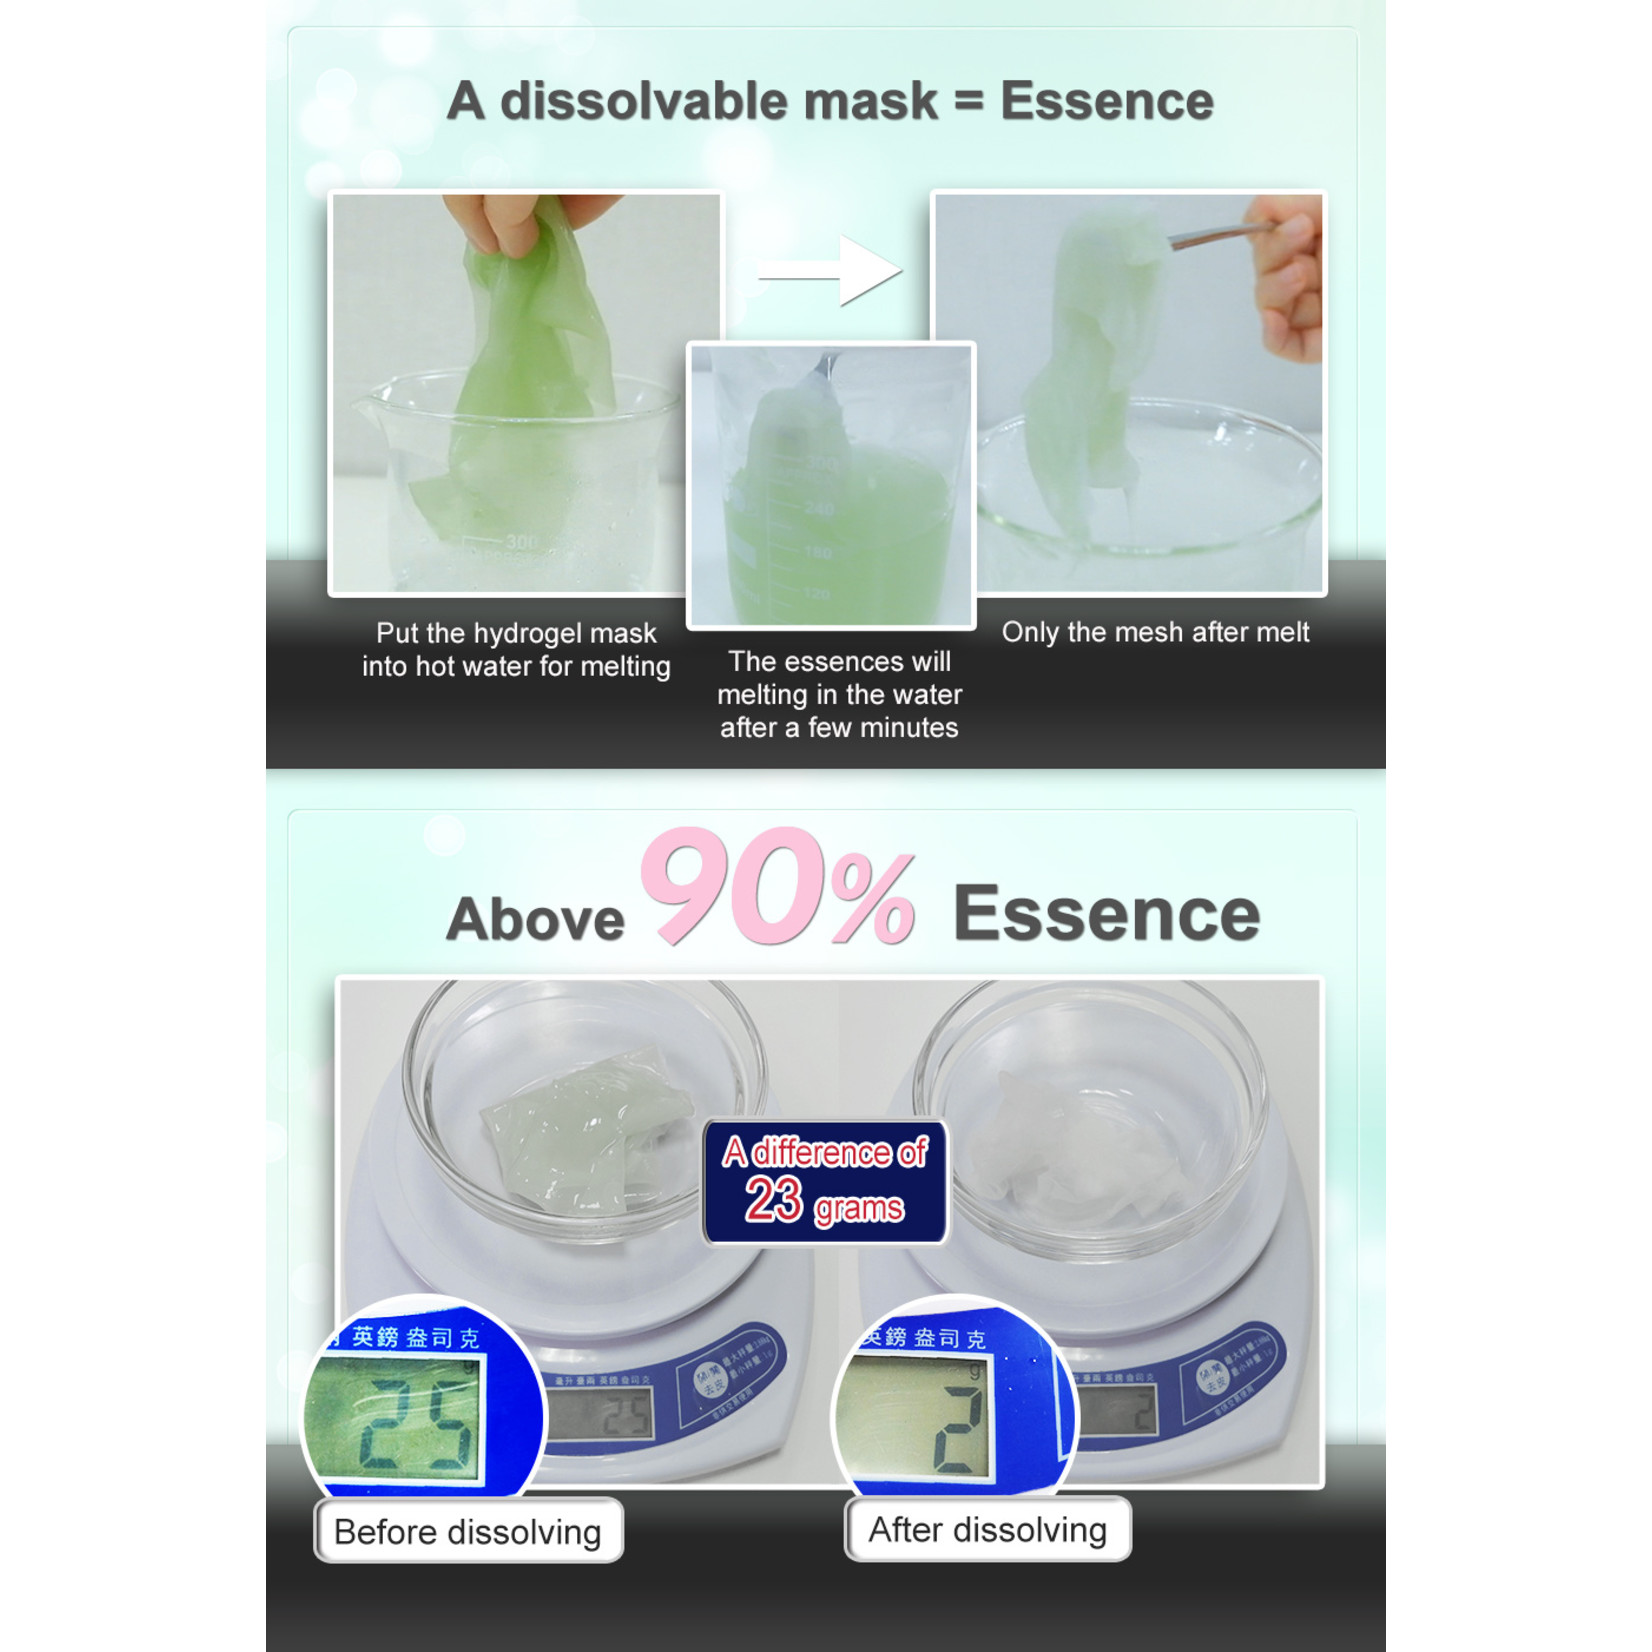 My Scheming Aloe Soothing Hydrogel mask